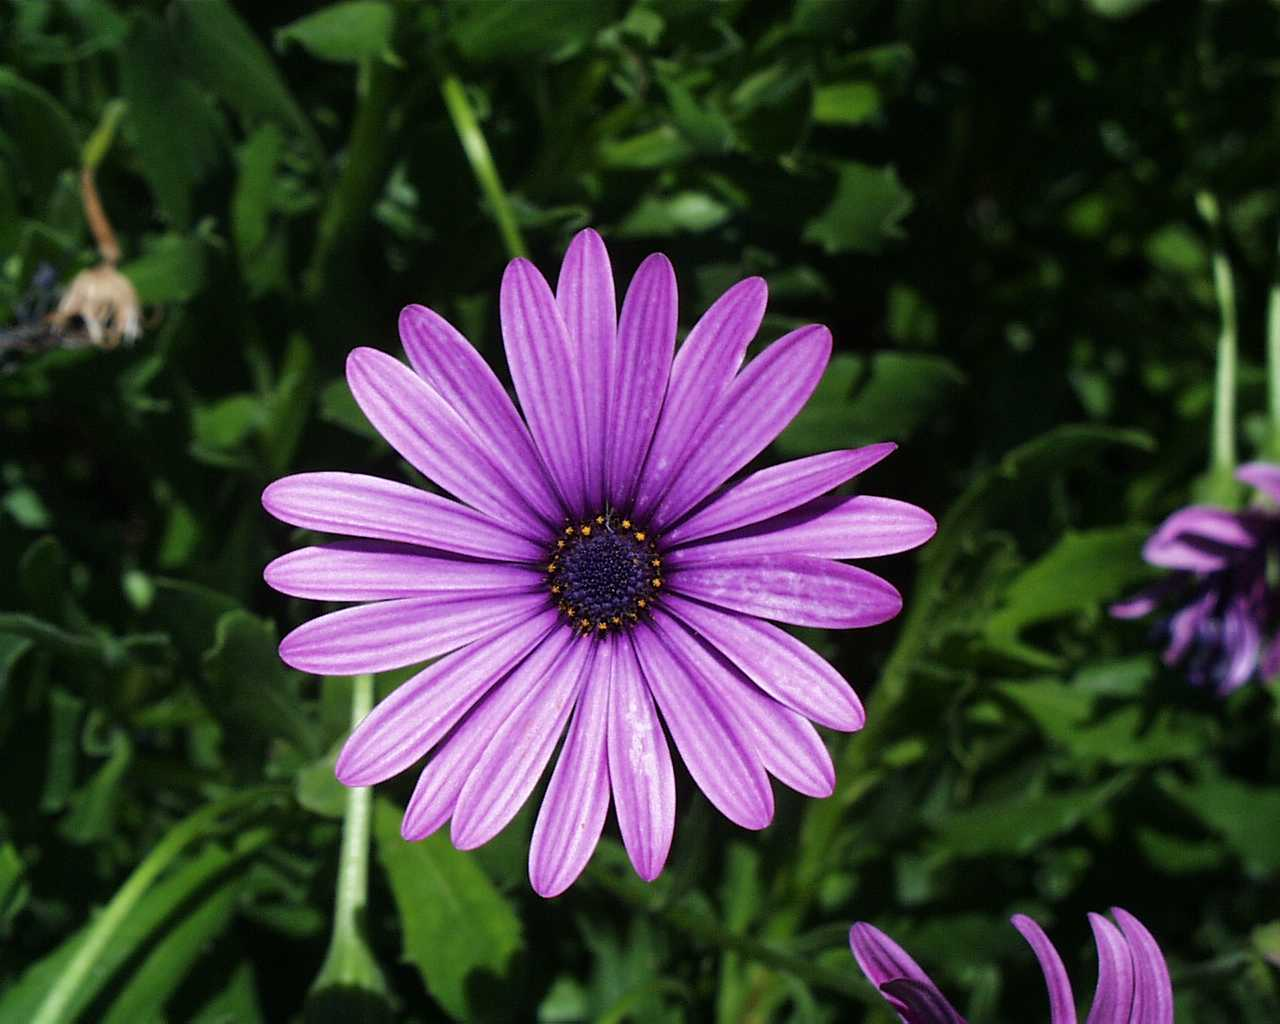 Flowers for flower lovers daisy flowers pictures purple daisy flower picture izmirmasajfo